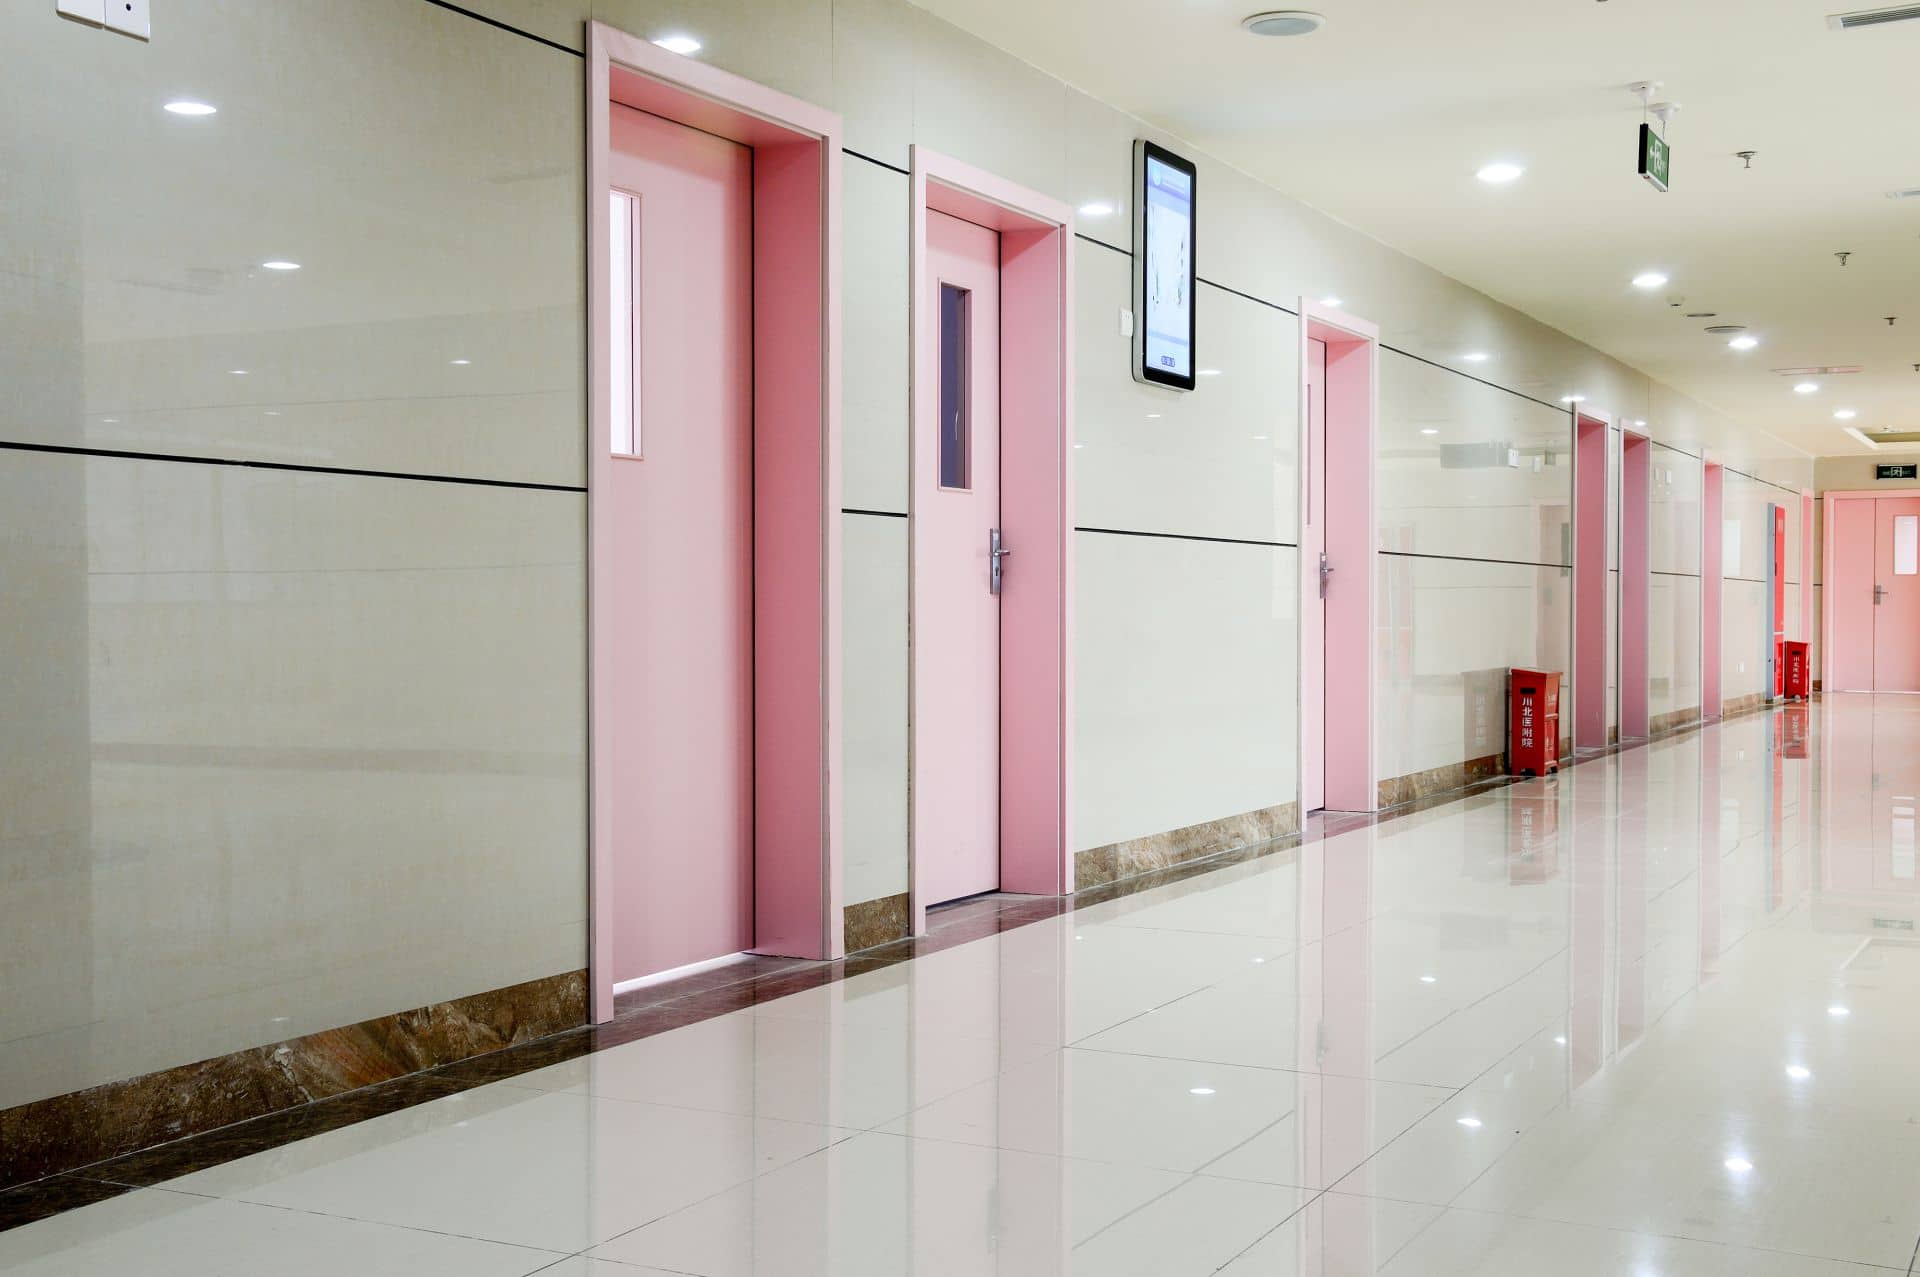 Hospital hall with digital way guidance system next to doors